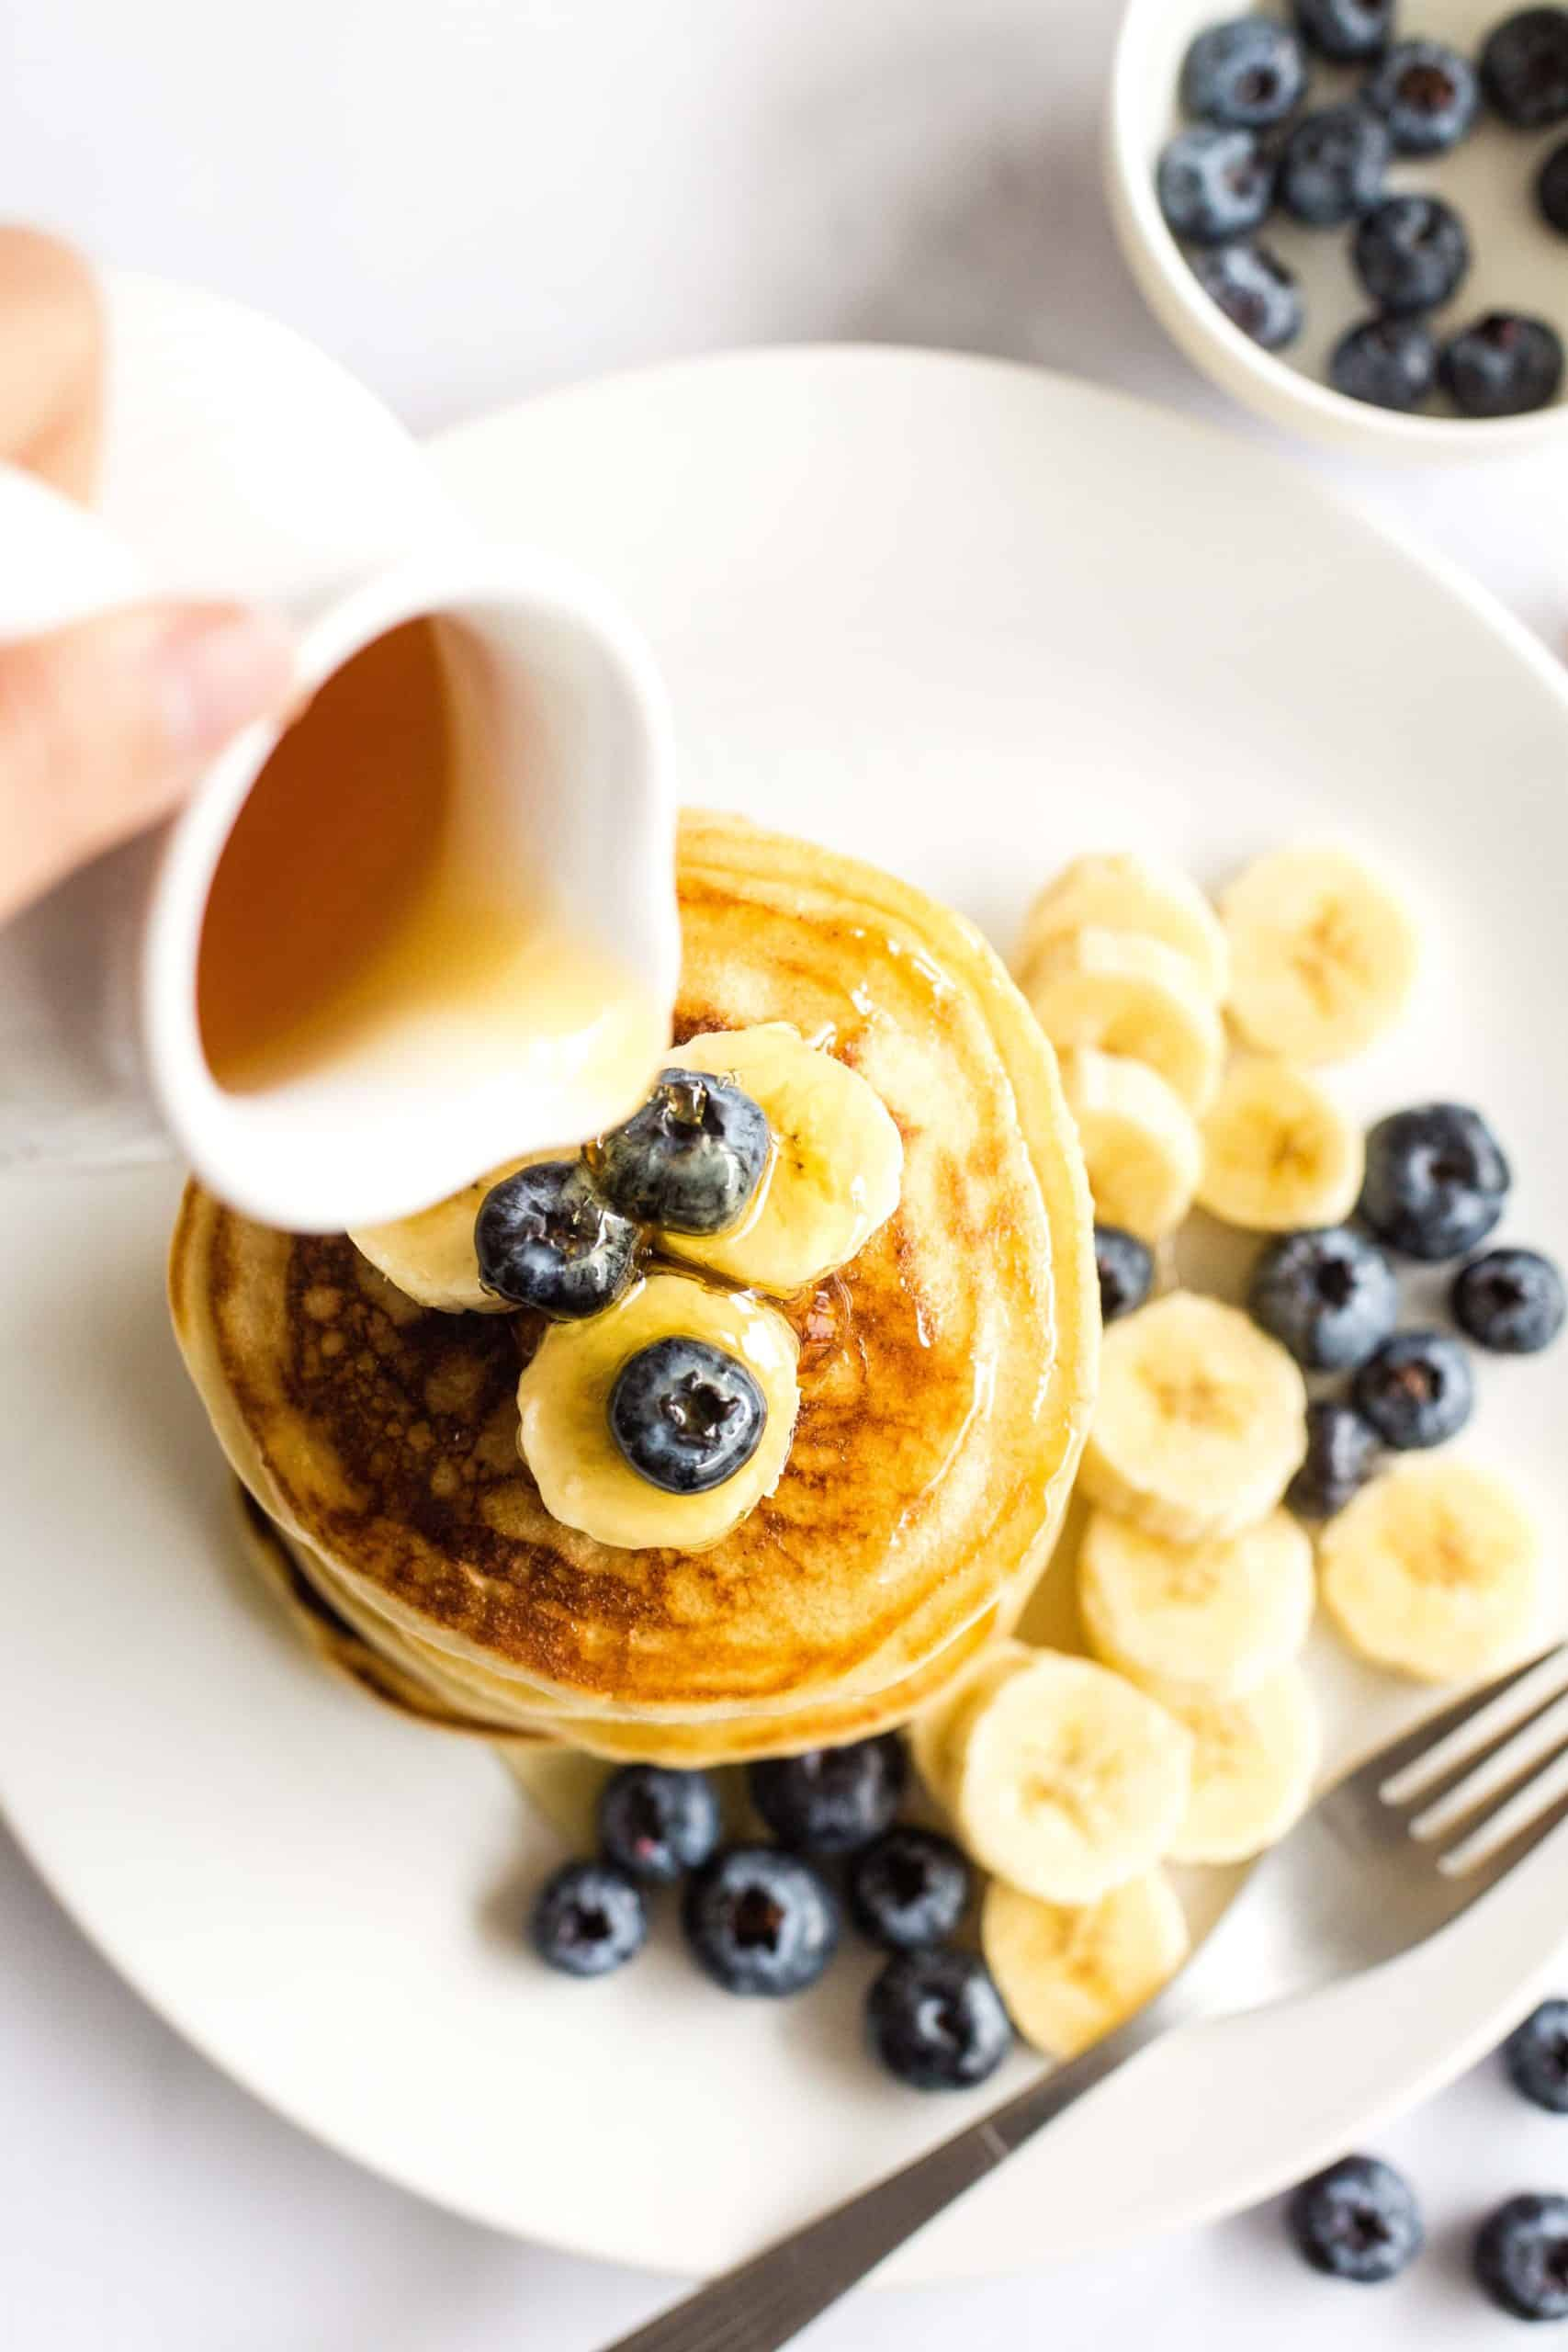 A hand pouring maple syrup onto a stack of gluten-free pancakes.